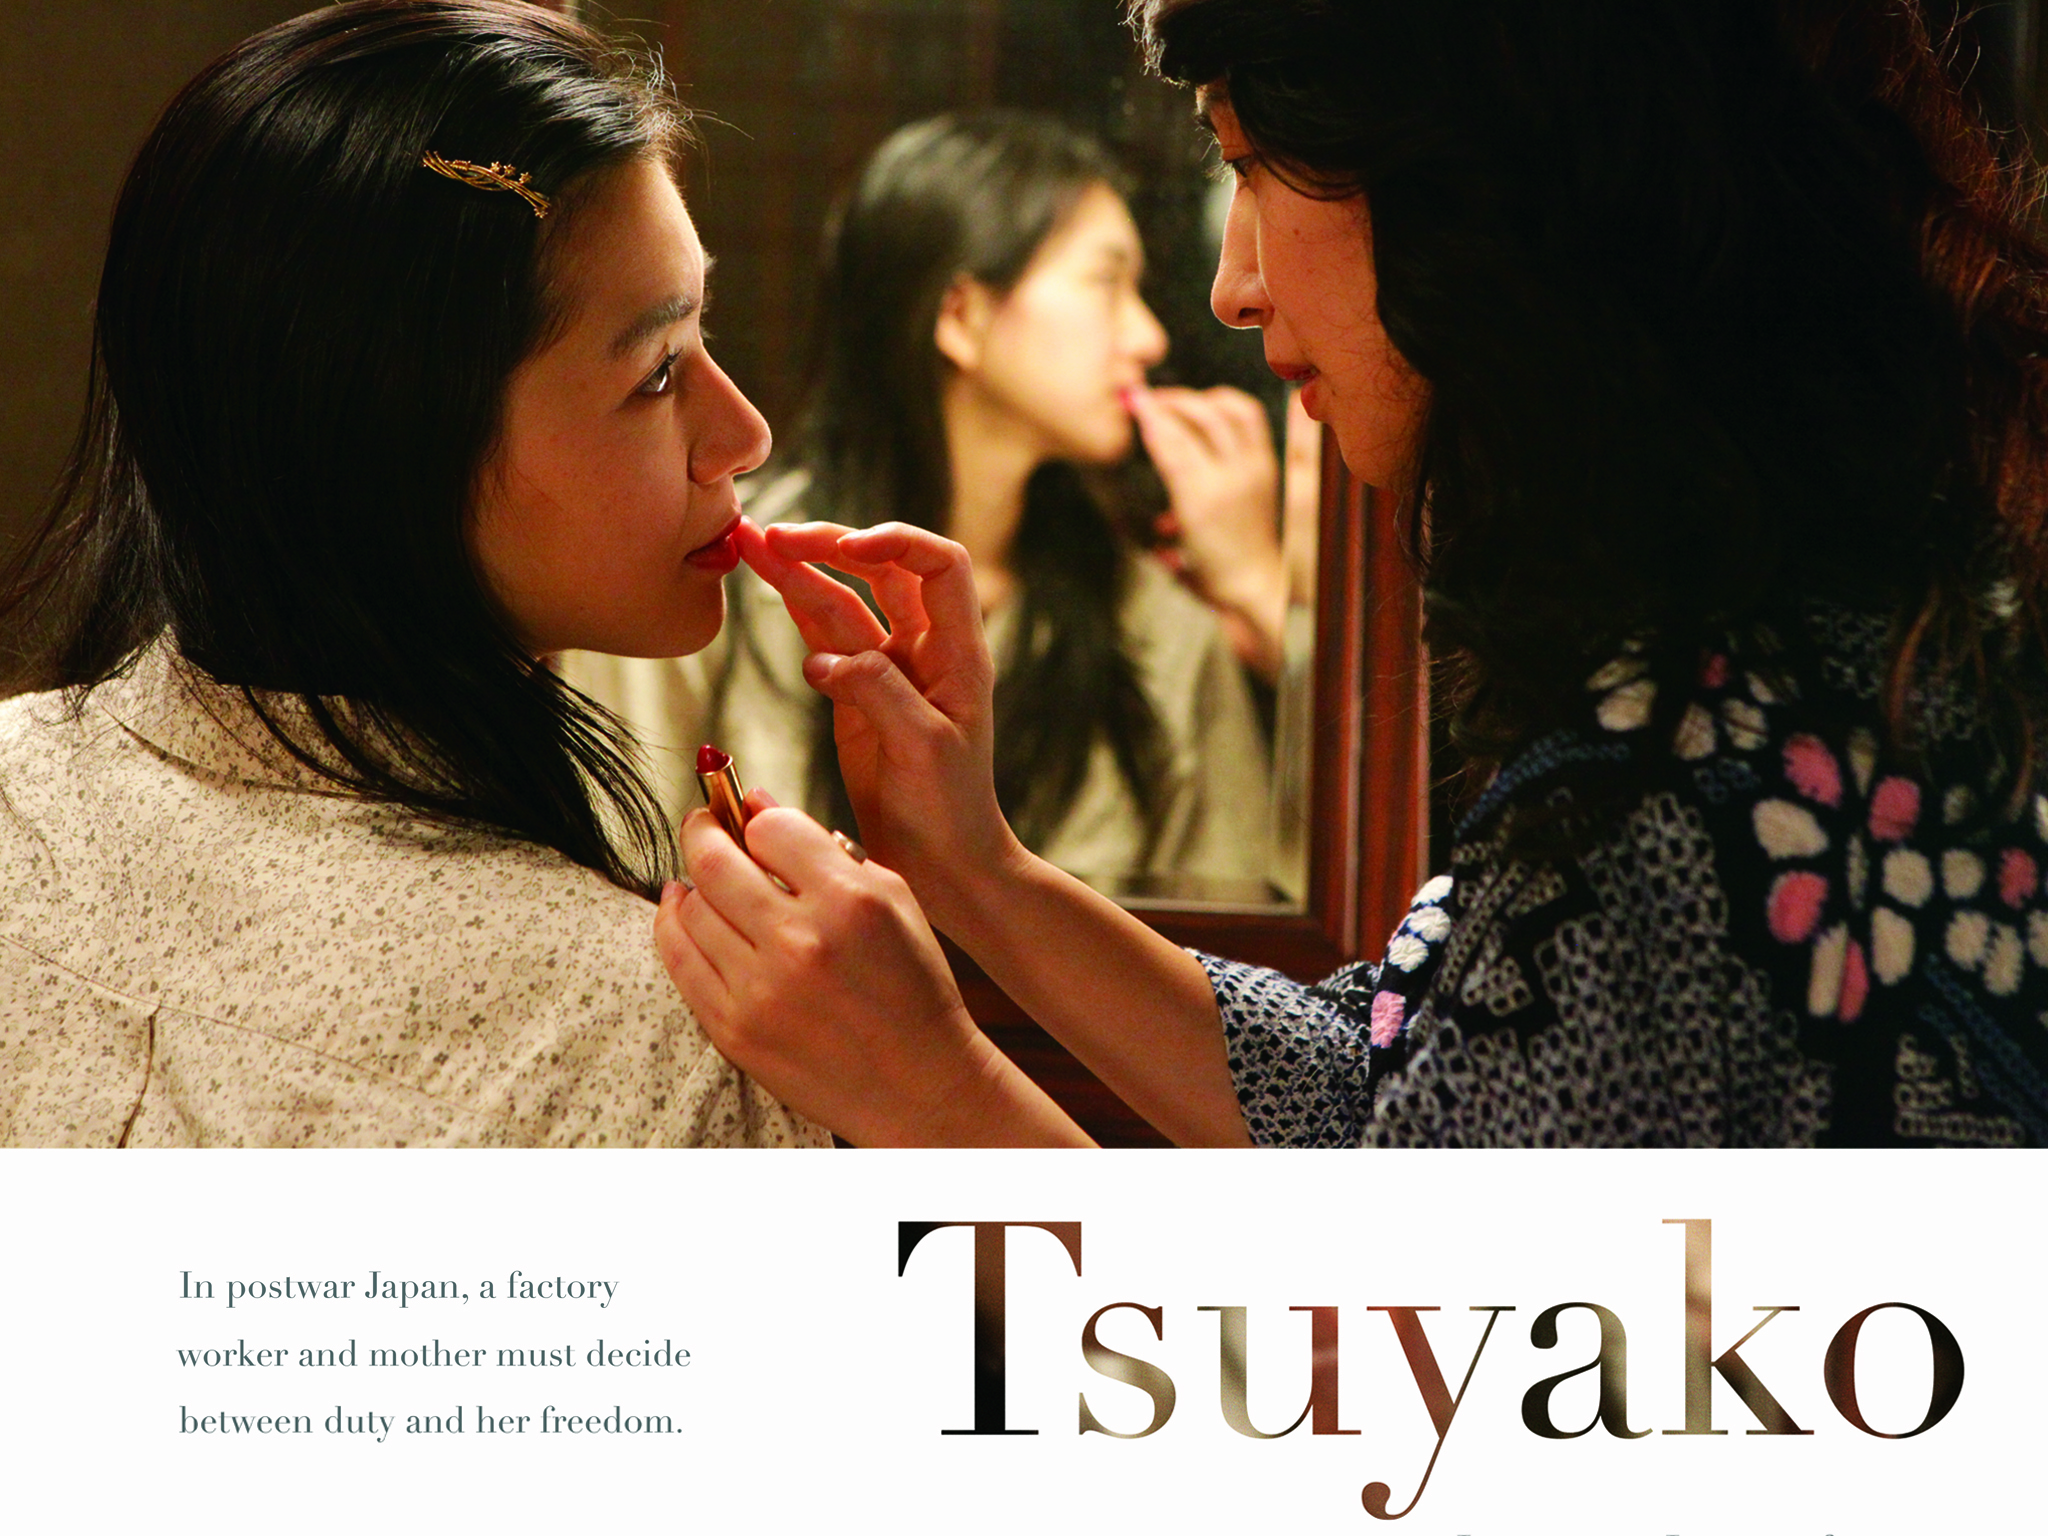 In postwar Japan, Tsuyako, a factory worker and mother must decide between duty and love, her family and her  freedom. Directed by Hikari Mitsuyo Miyazaki